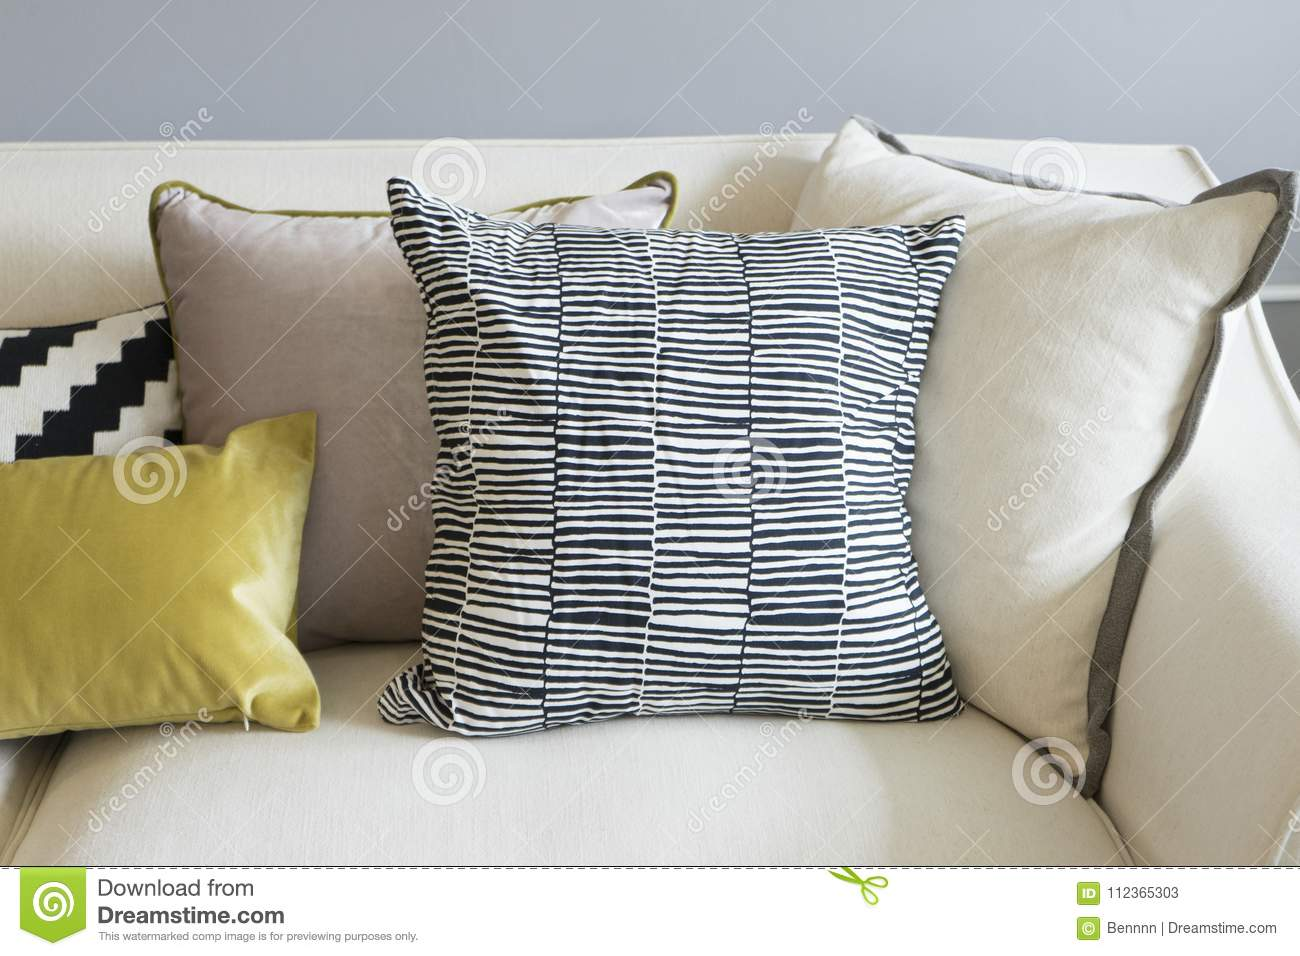 Remarkable Colorful Pillows On Sofa In Modern Living Room Stock Image Cjindustries Chair Design For Home Cjindustriesco